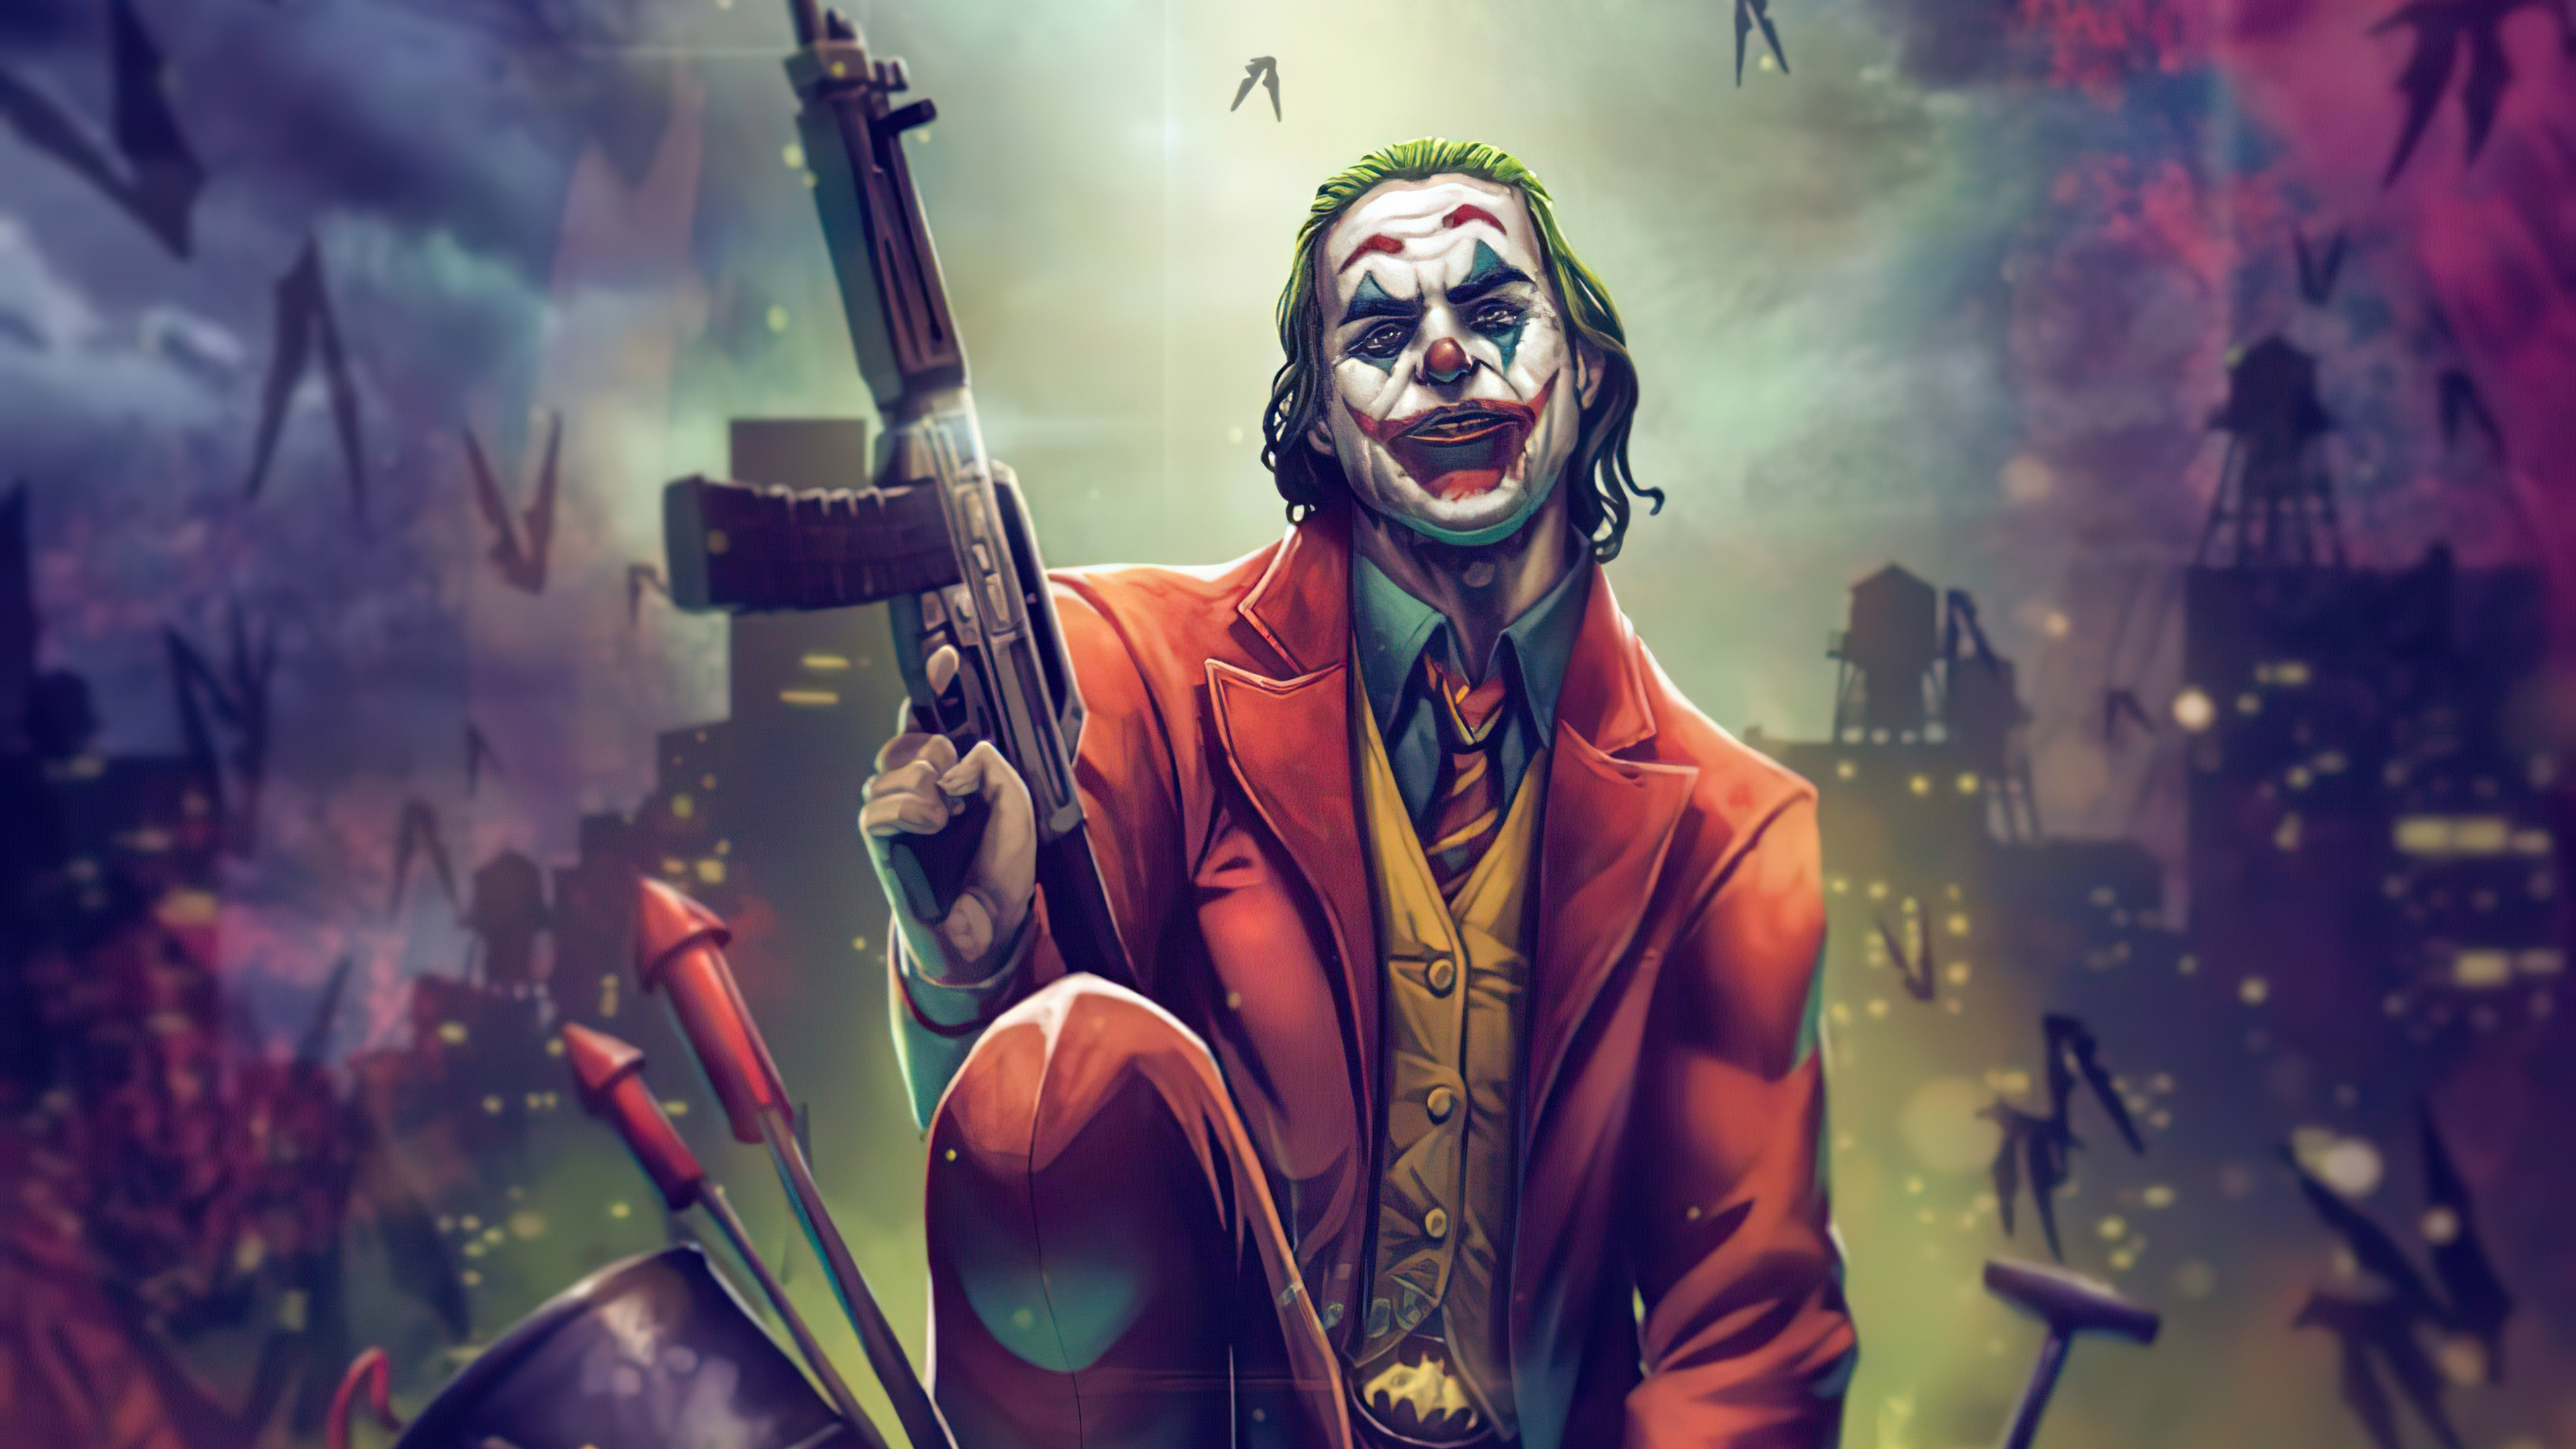 Joker With Gun Up 4k Wallpaper Title Joker With Joker Wallpaper With Gun 3840x2160 Download Hd Wallpaper Wallpapertip